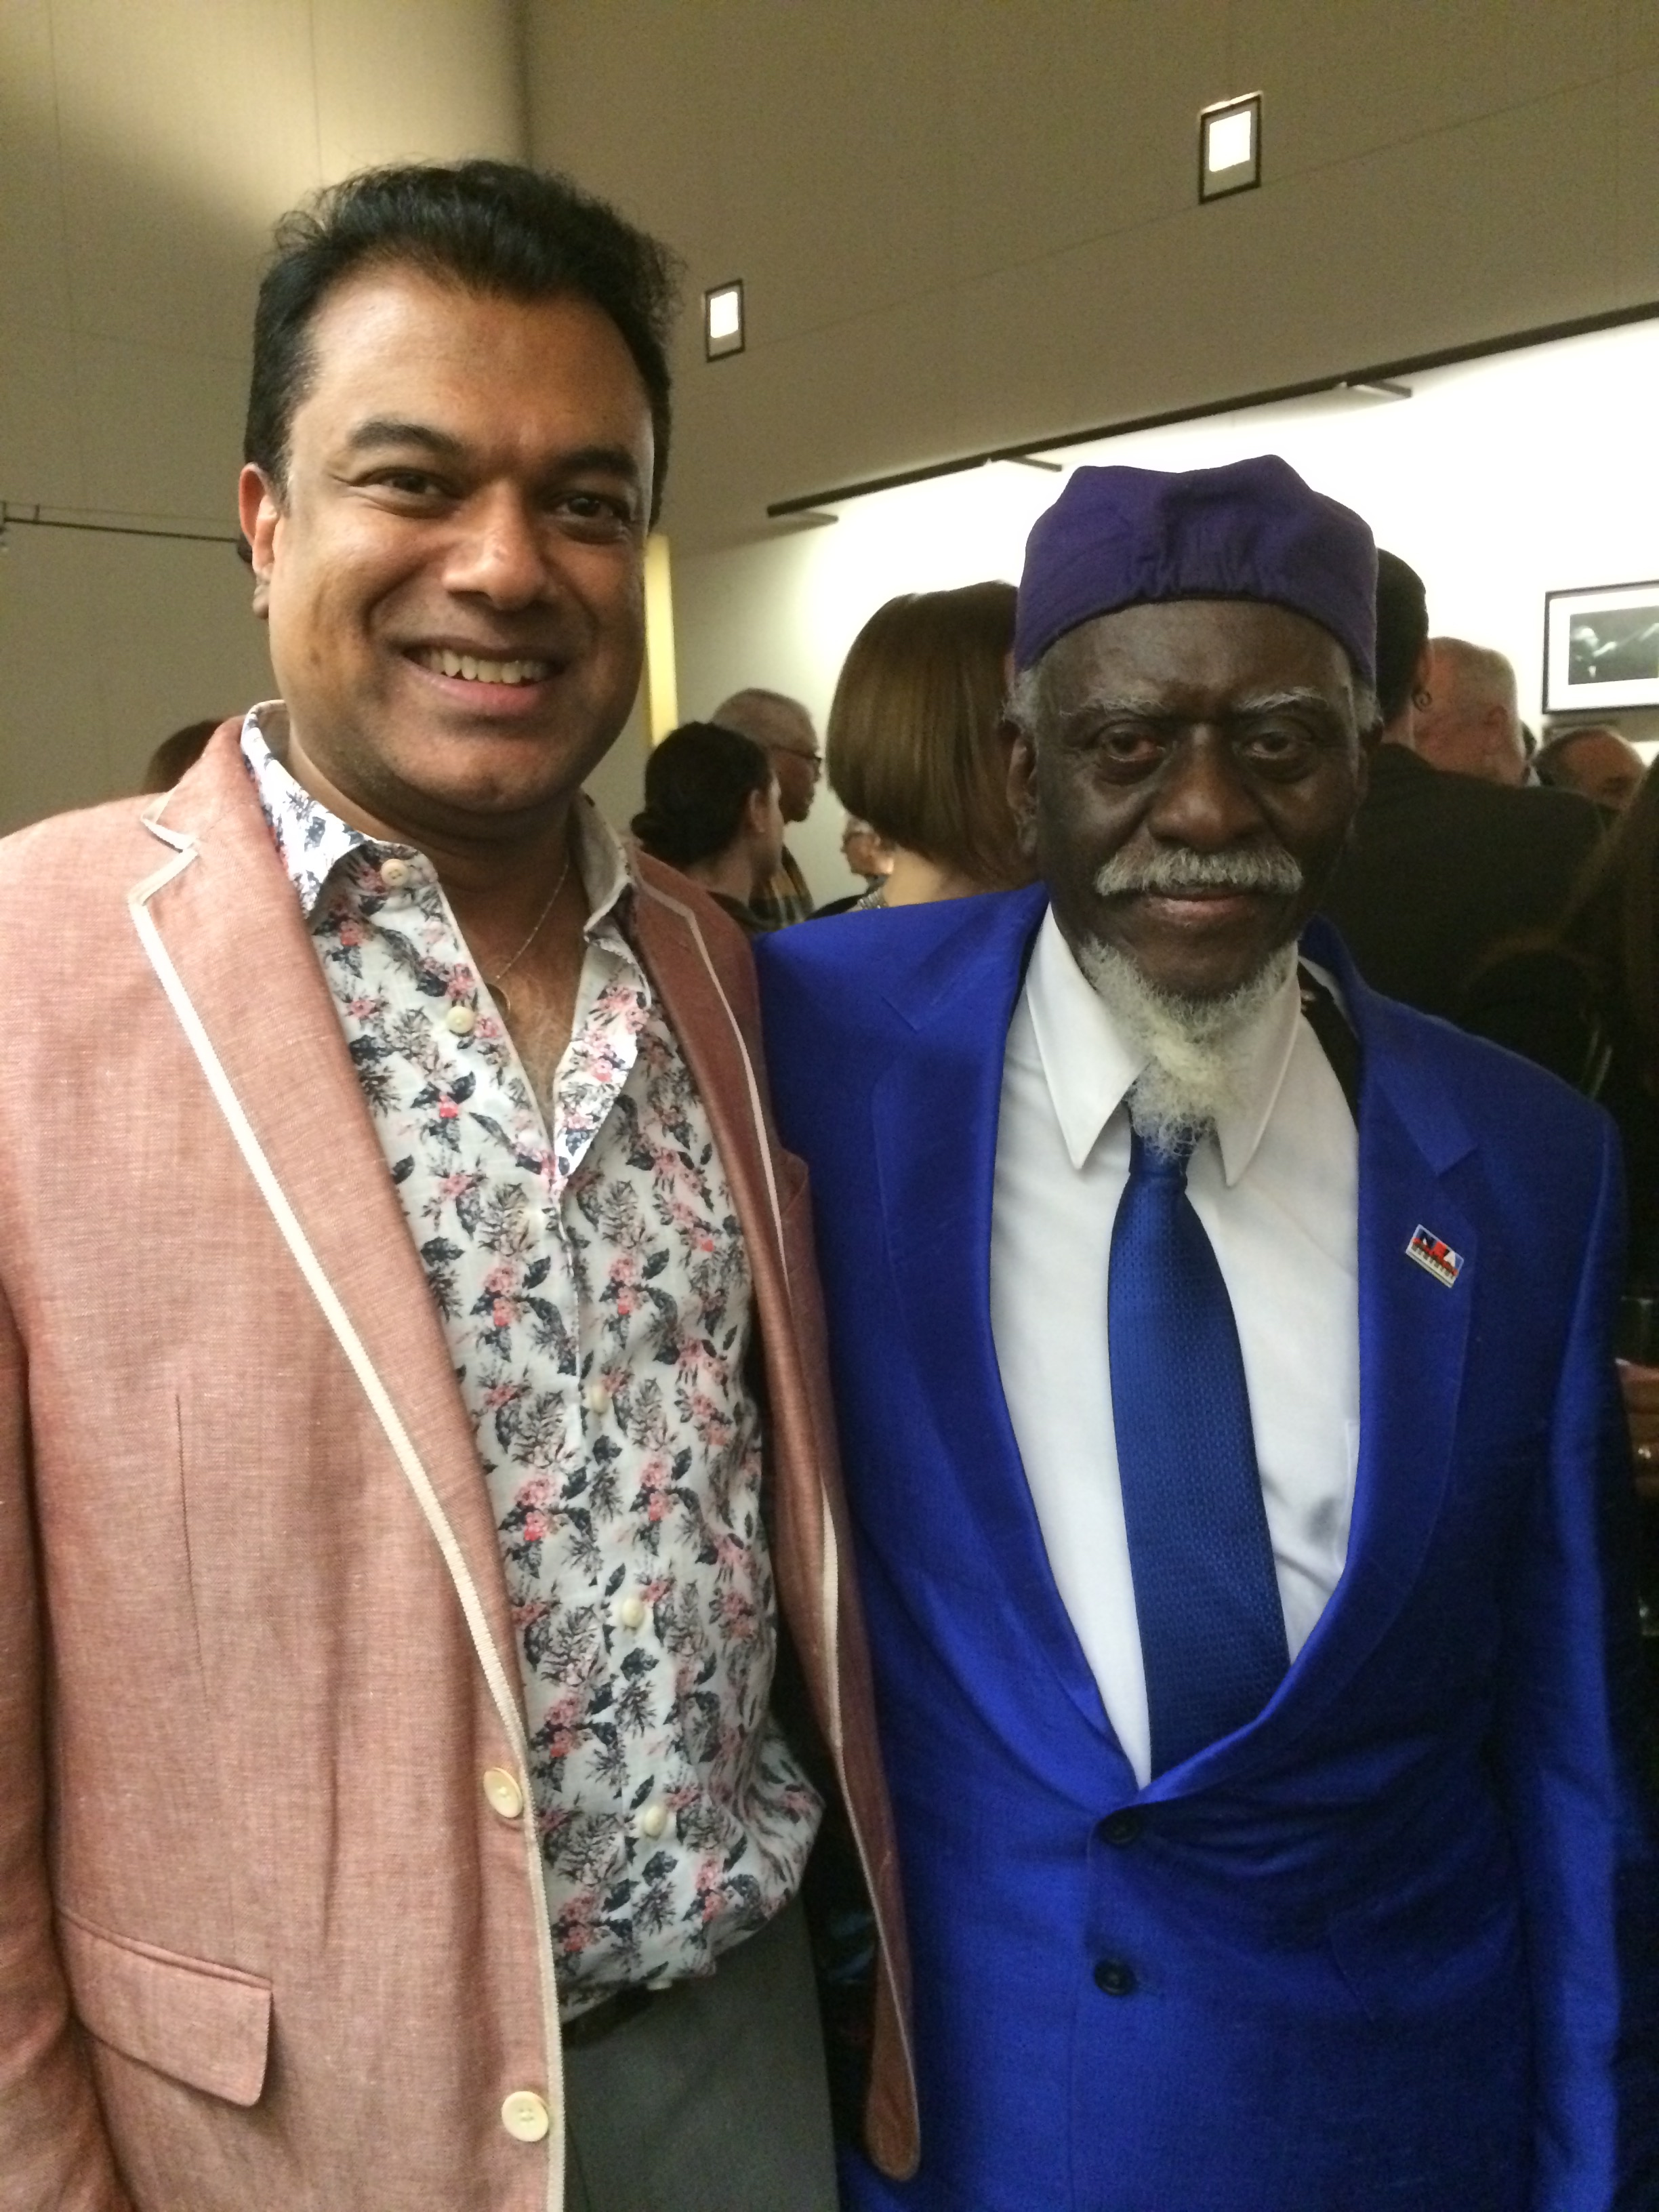 Me and Pharoah Sanders at the NEA Jazz Masters Ceremony, April 2016.